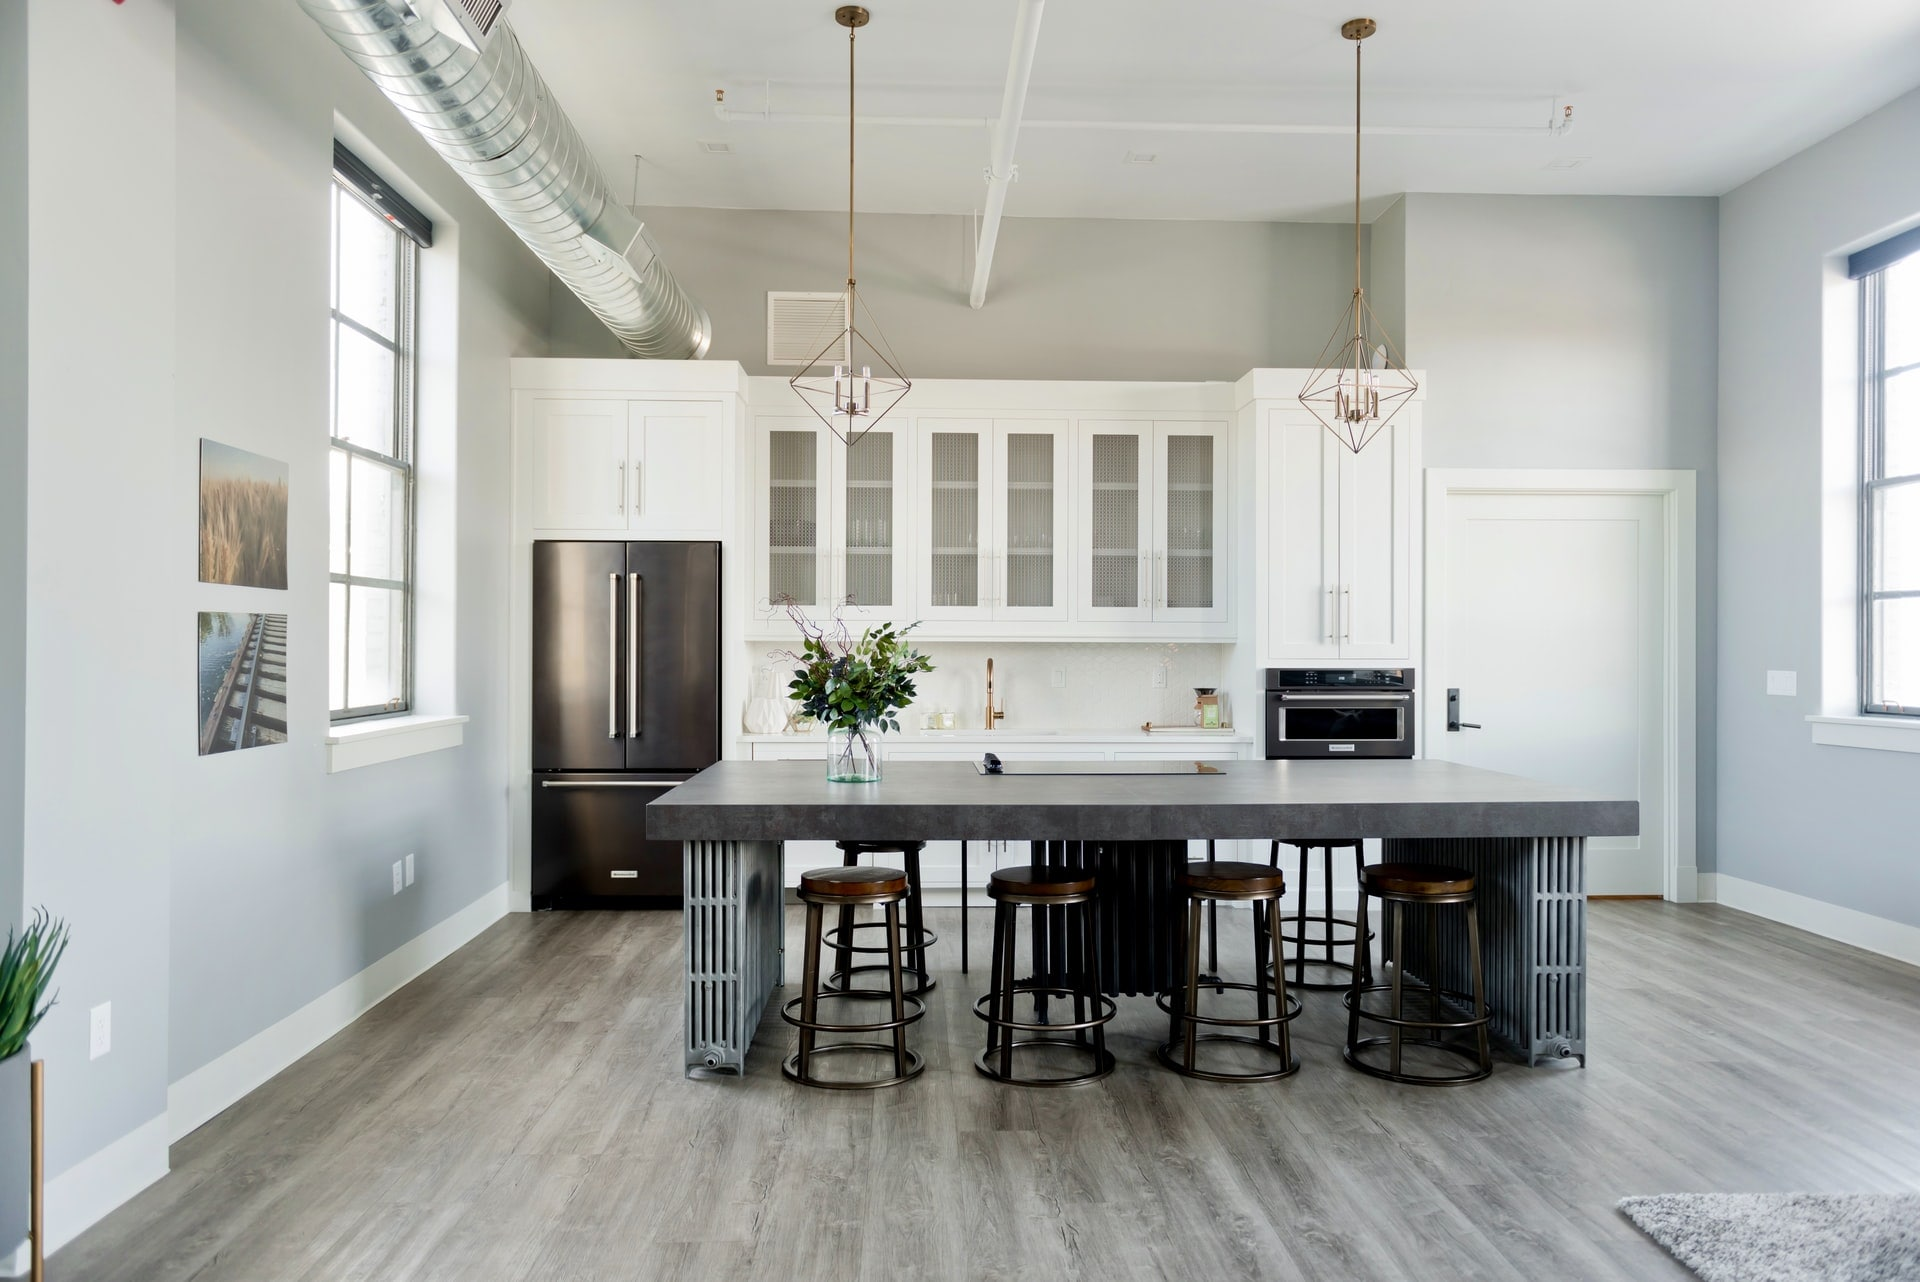 5 Stylish And Minimalist Kitchen Designs To Implement In Your Home